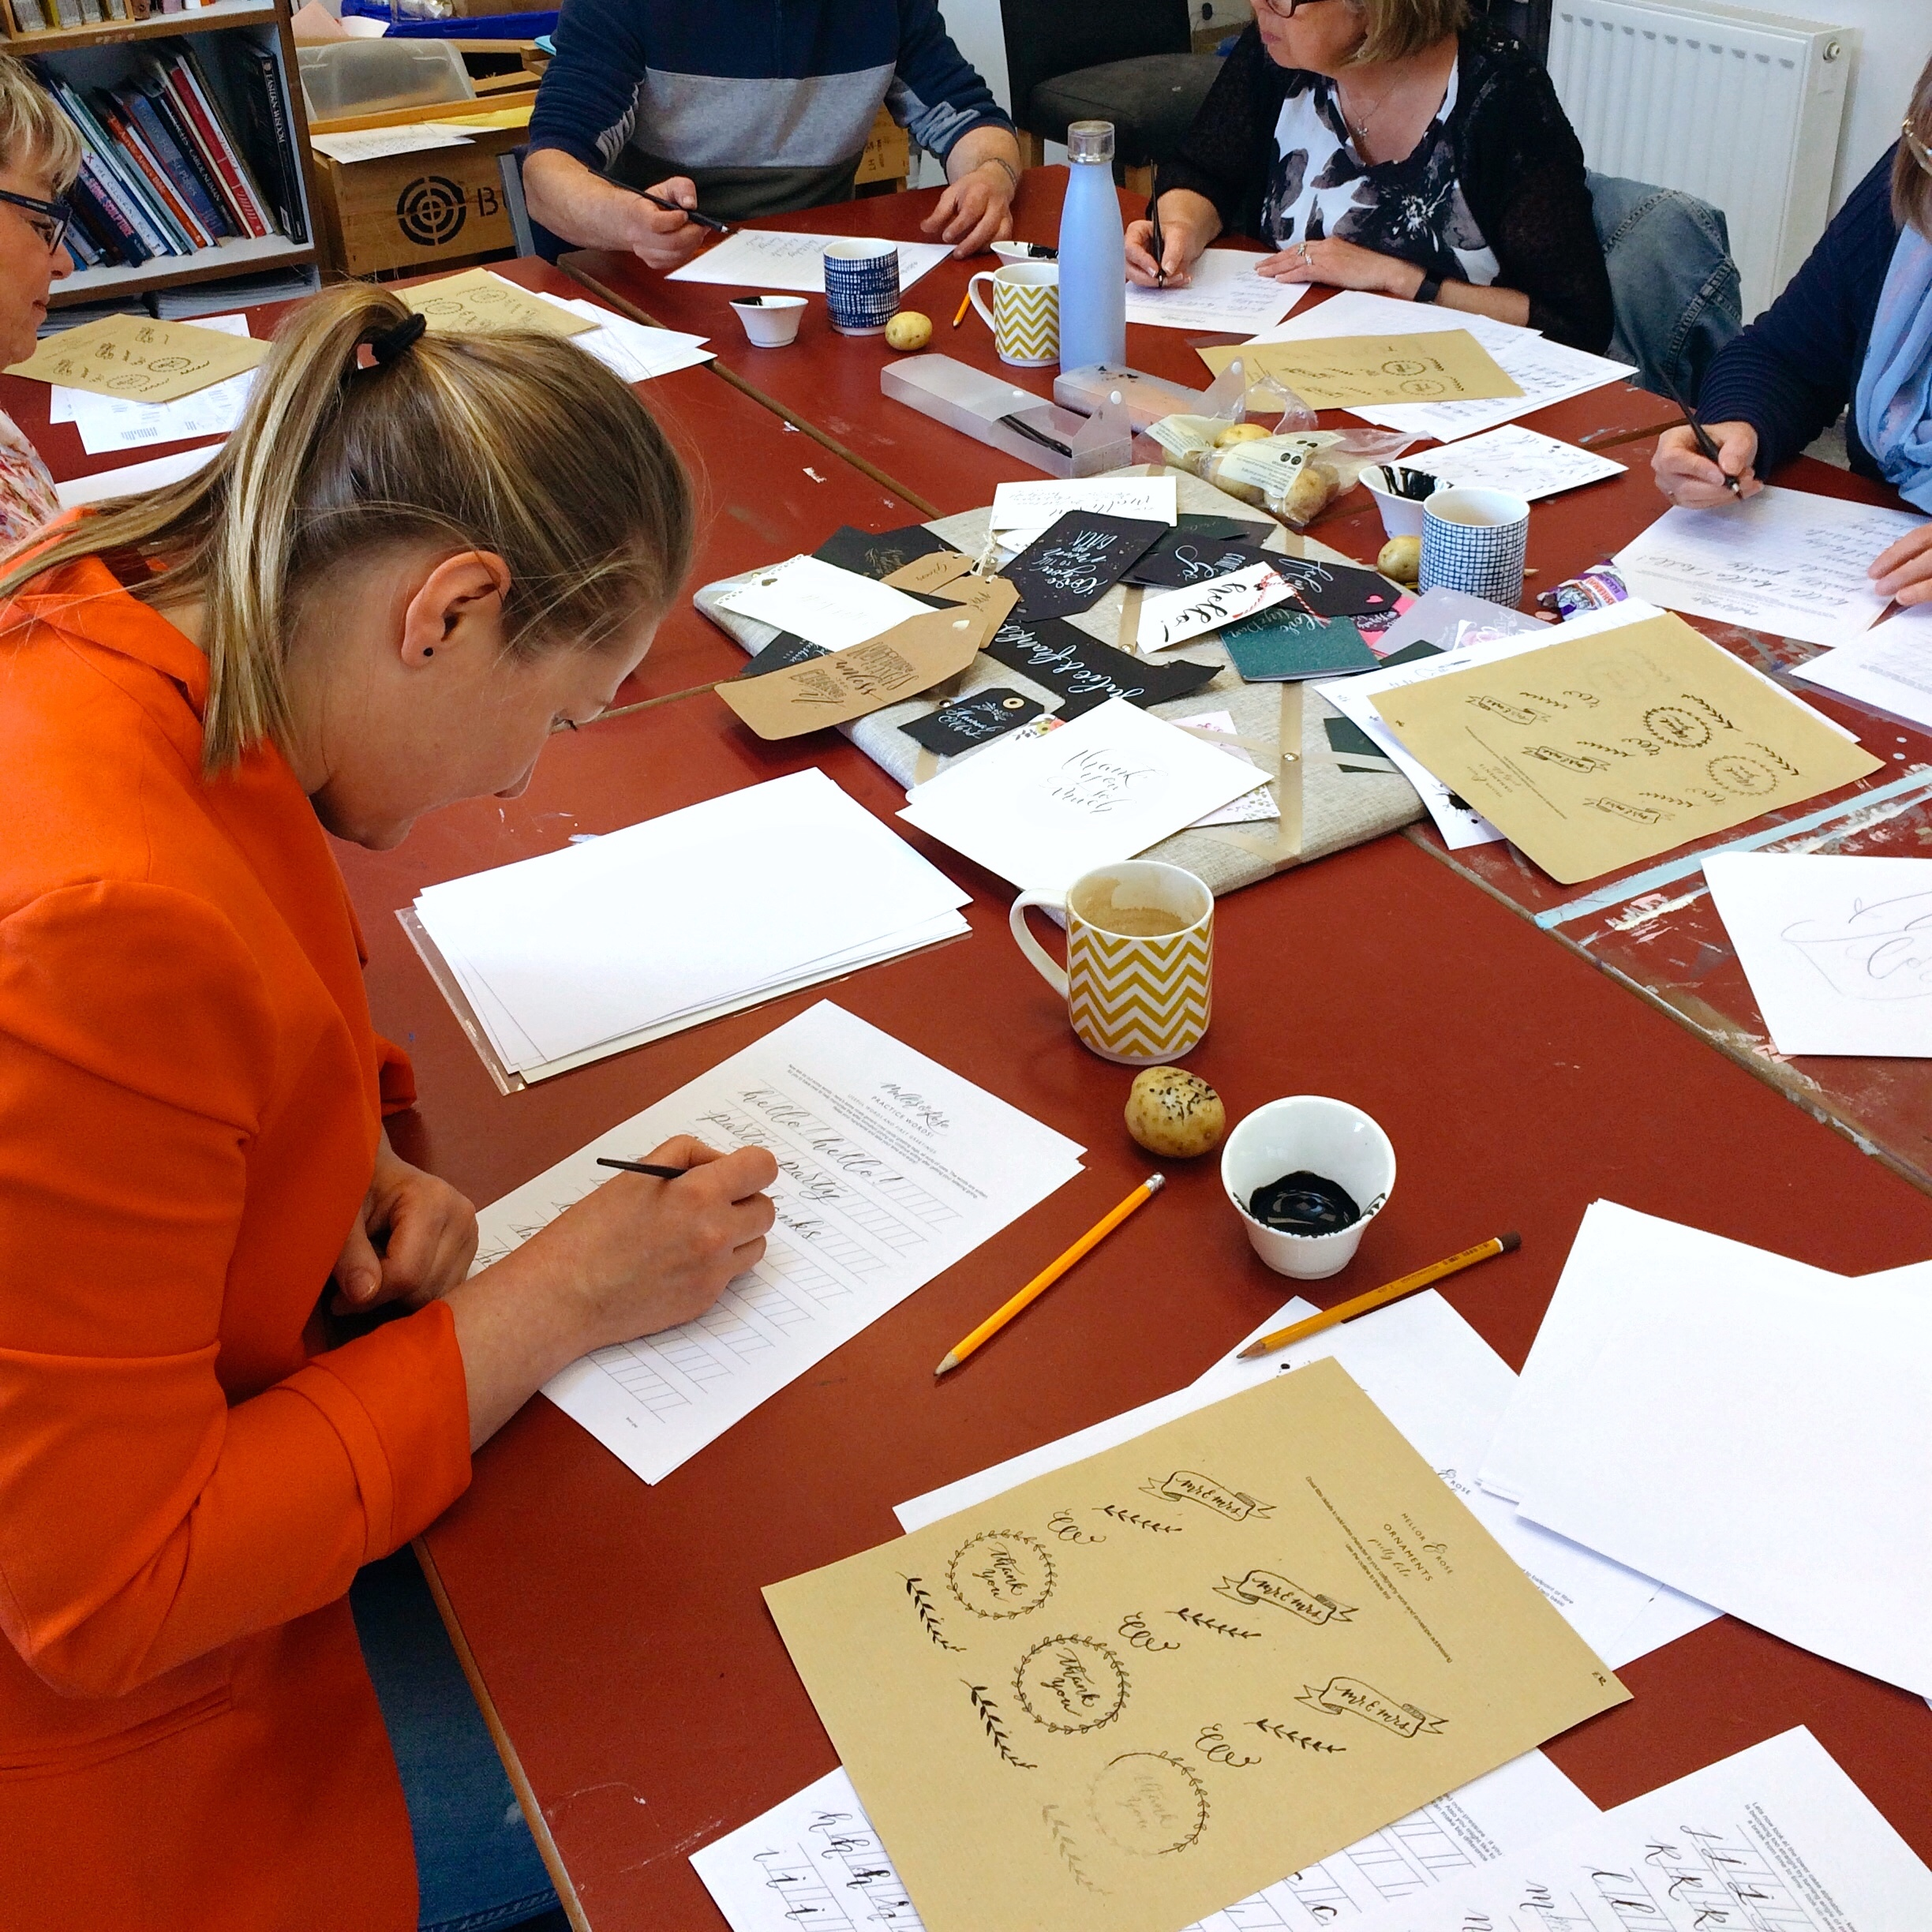 Warton Hall in Lytham St Annes in Lancashire as part of National Garden Scheme // Modern Calligraphy workshops with Mellor&Rose